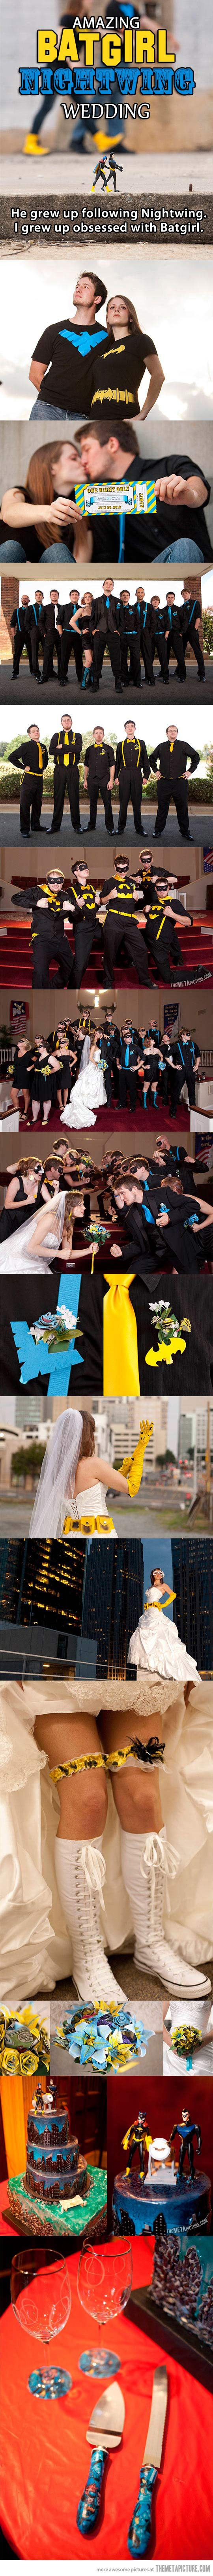 When geeks fall in love and get married. :)